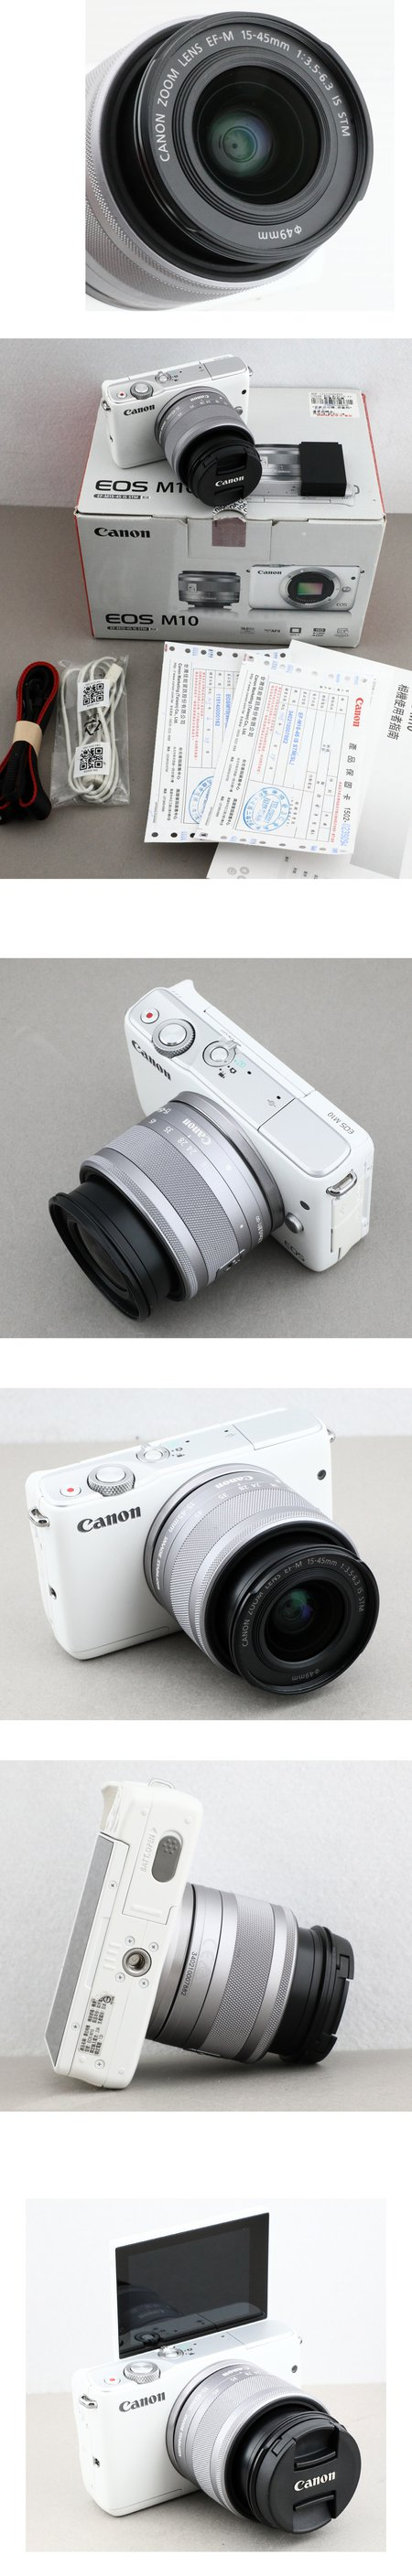 Canon 白色 M10 + 15-45mm IS STM